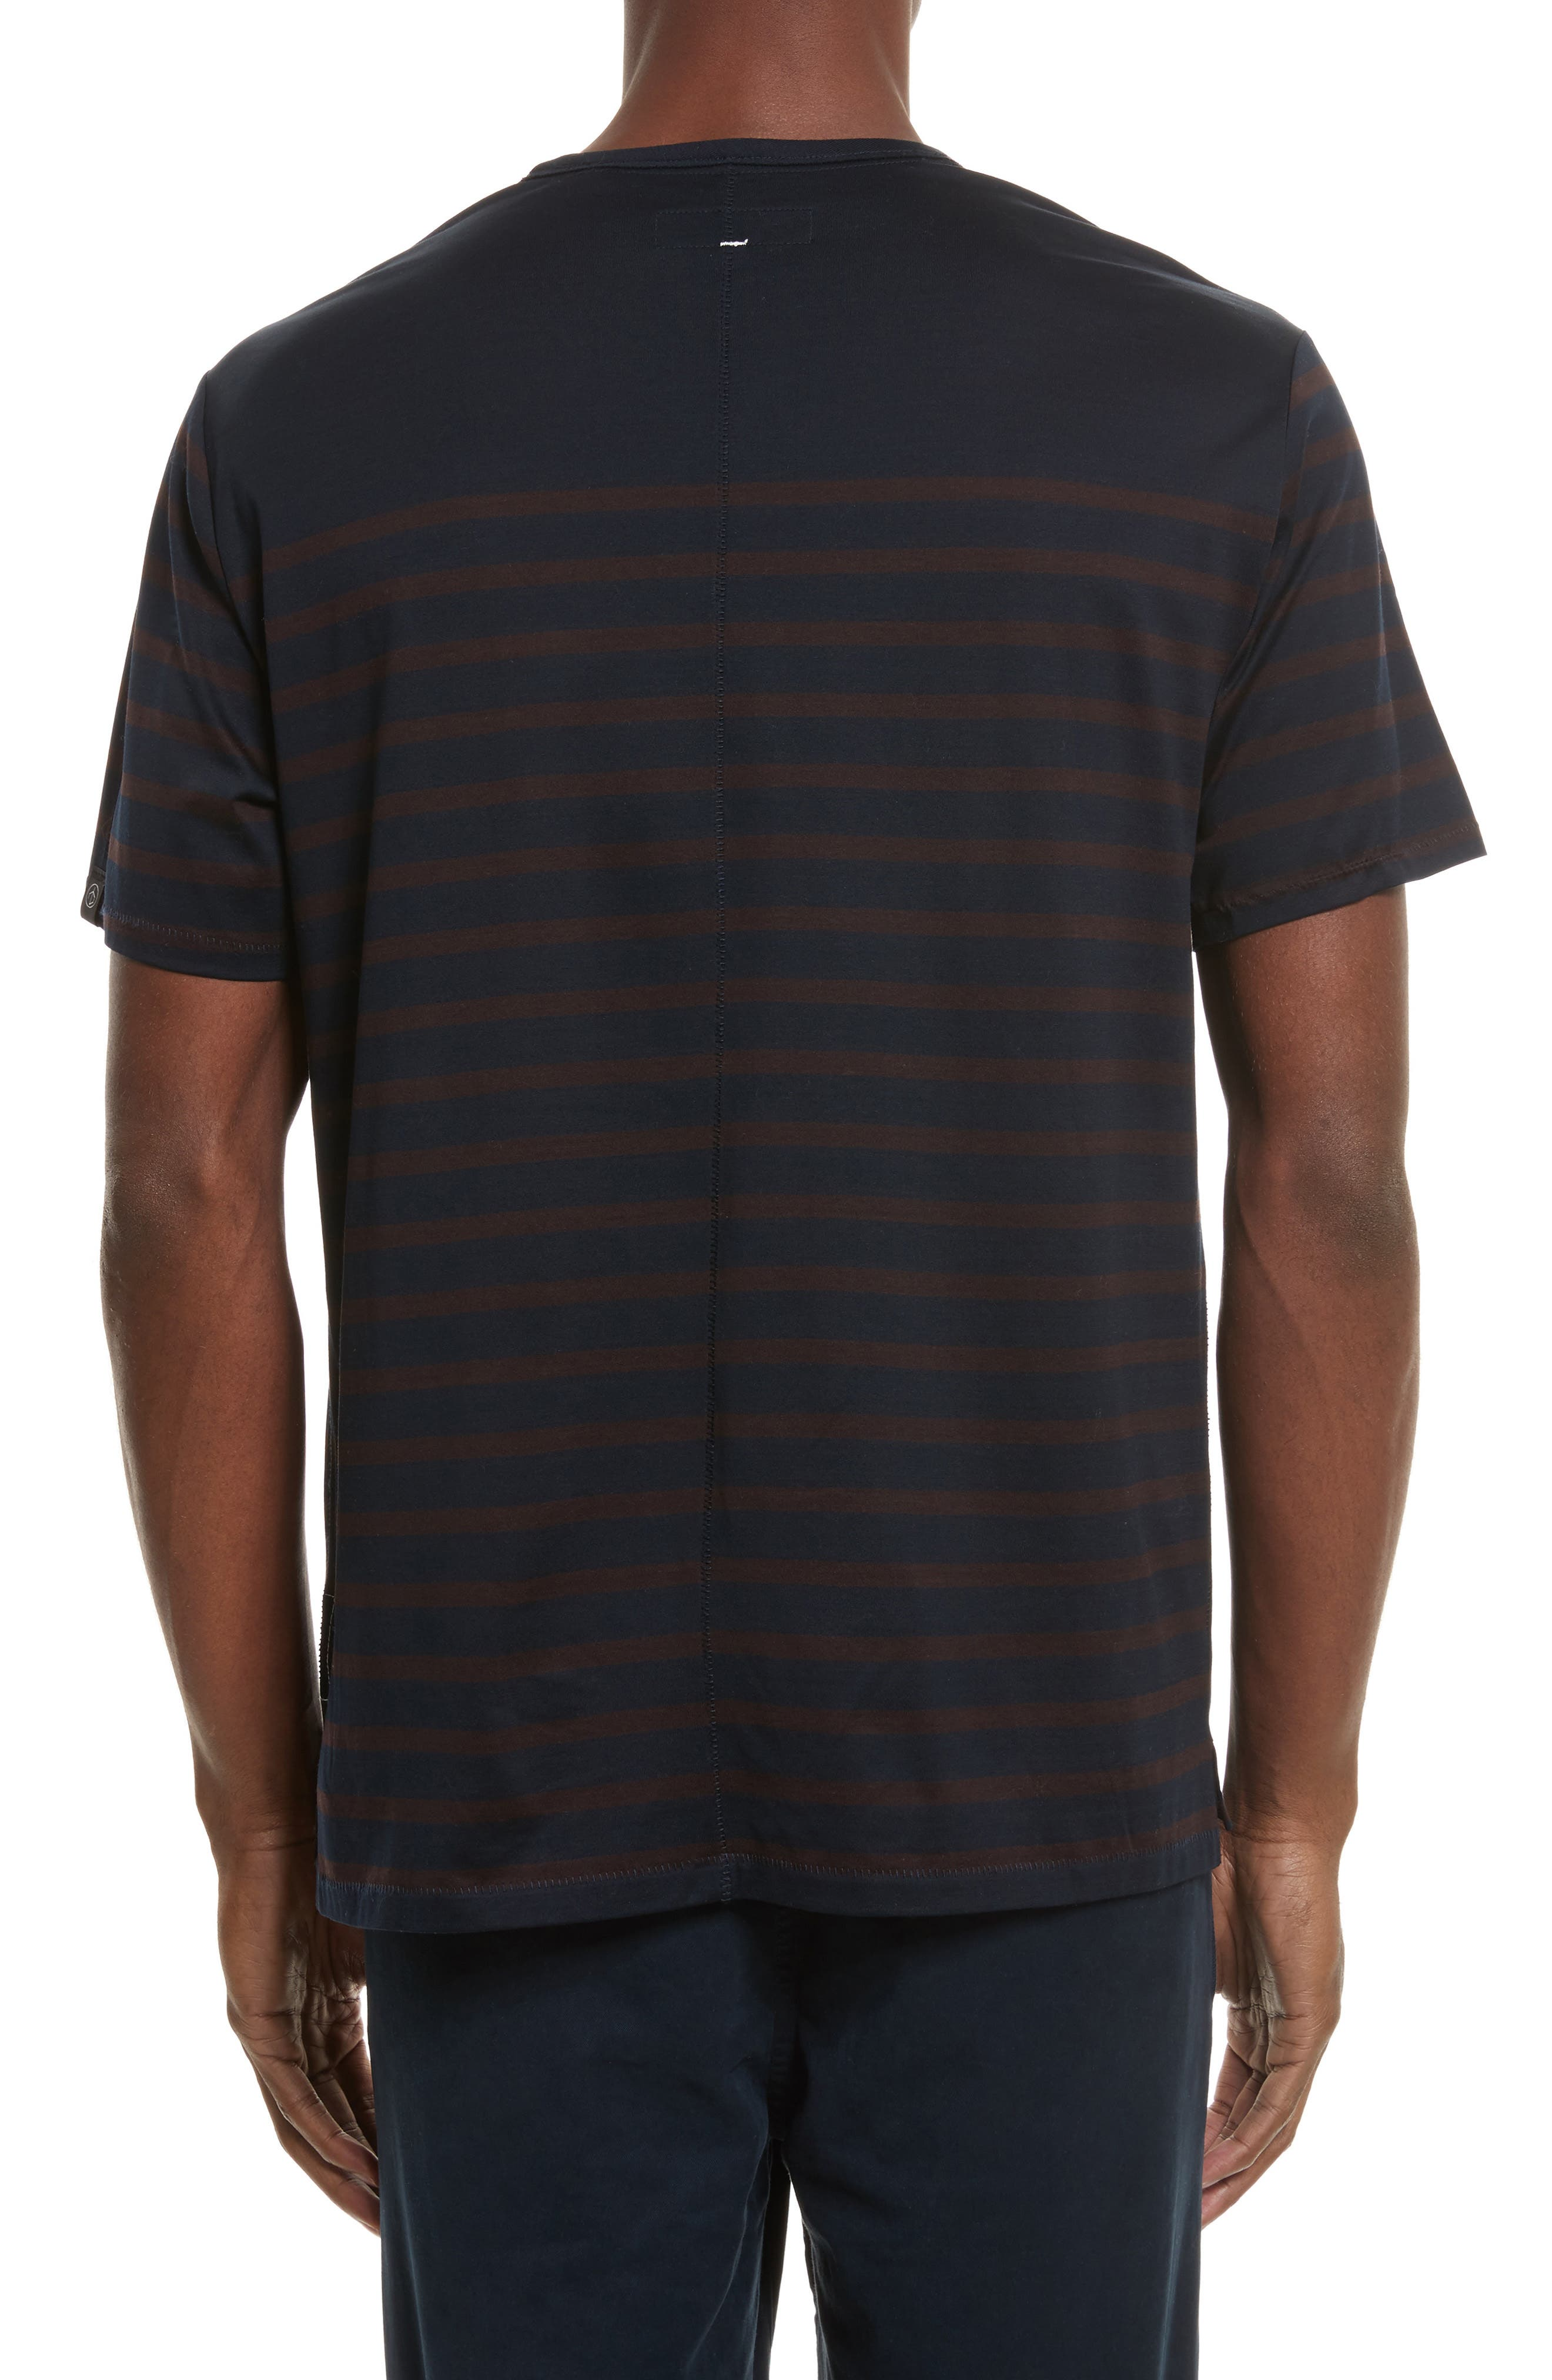 Henry Stripe T-Shirt,                             Alternate thumbnail 2, color,                             Navy/ Chocolate